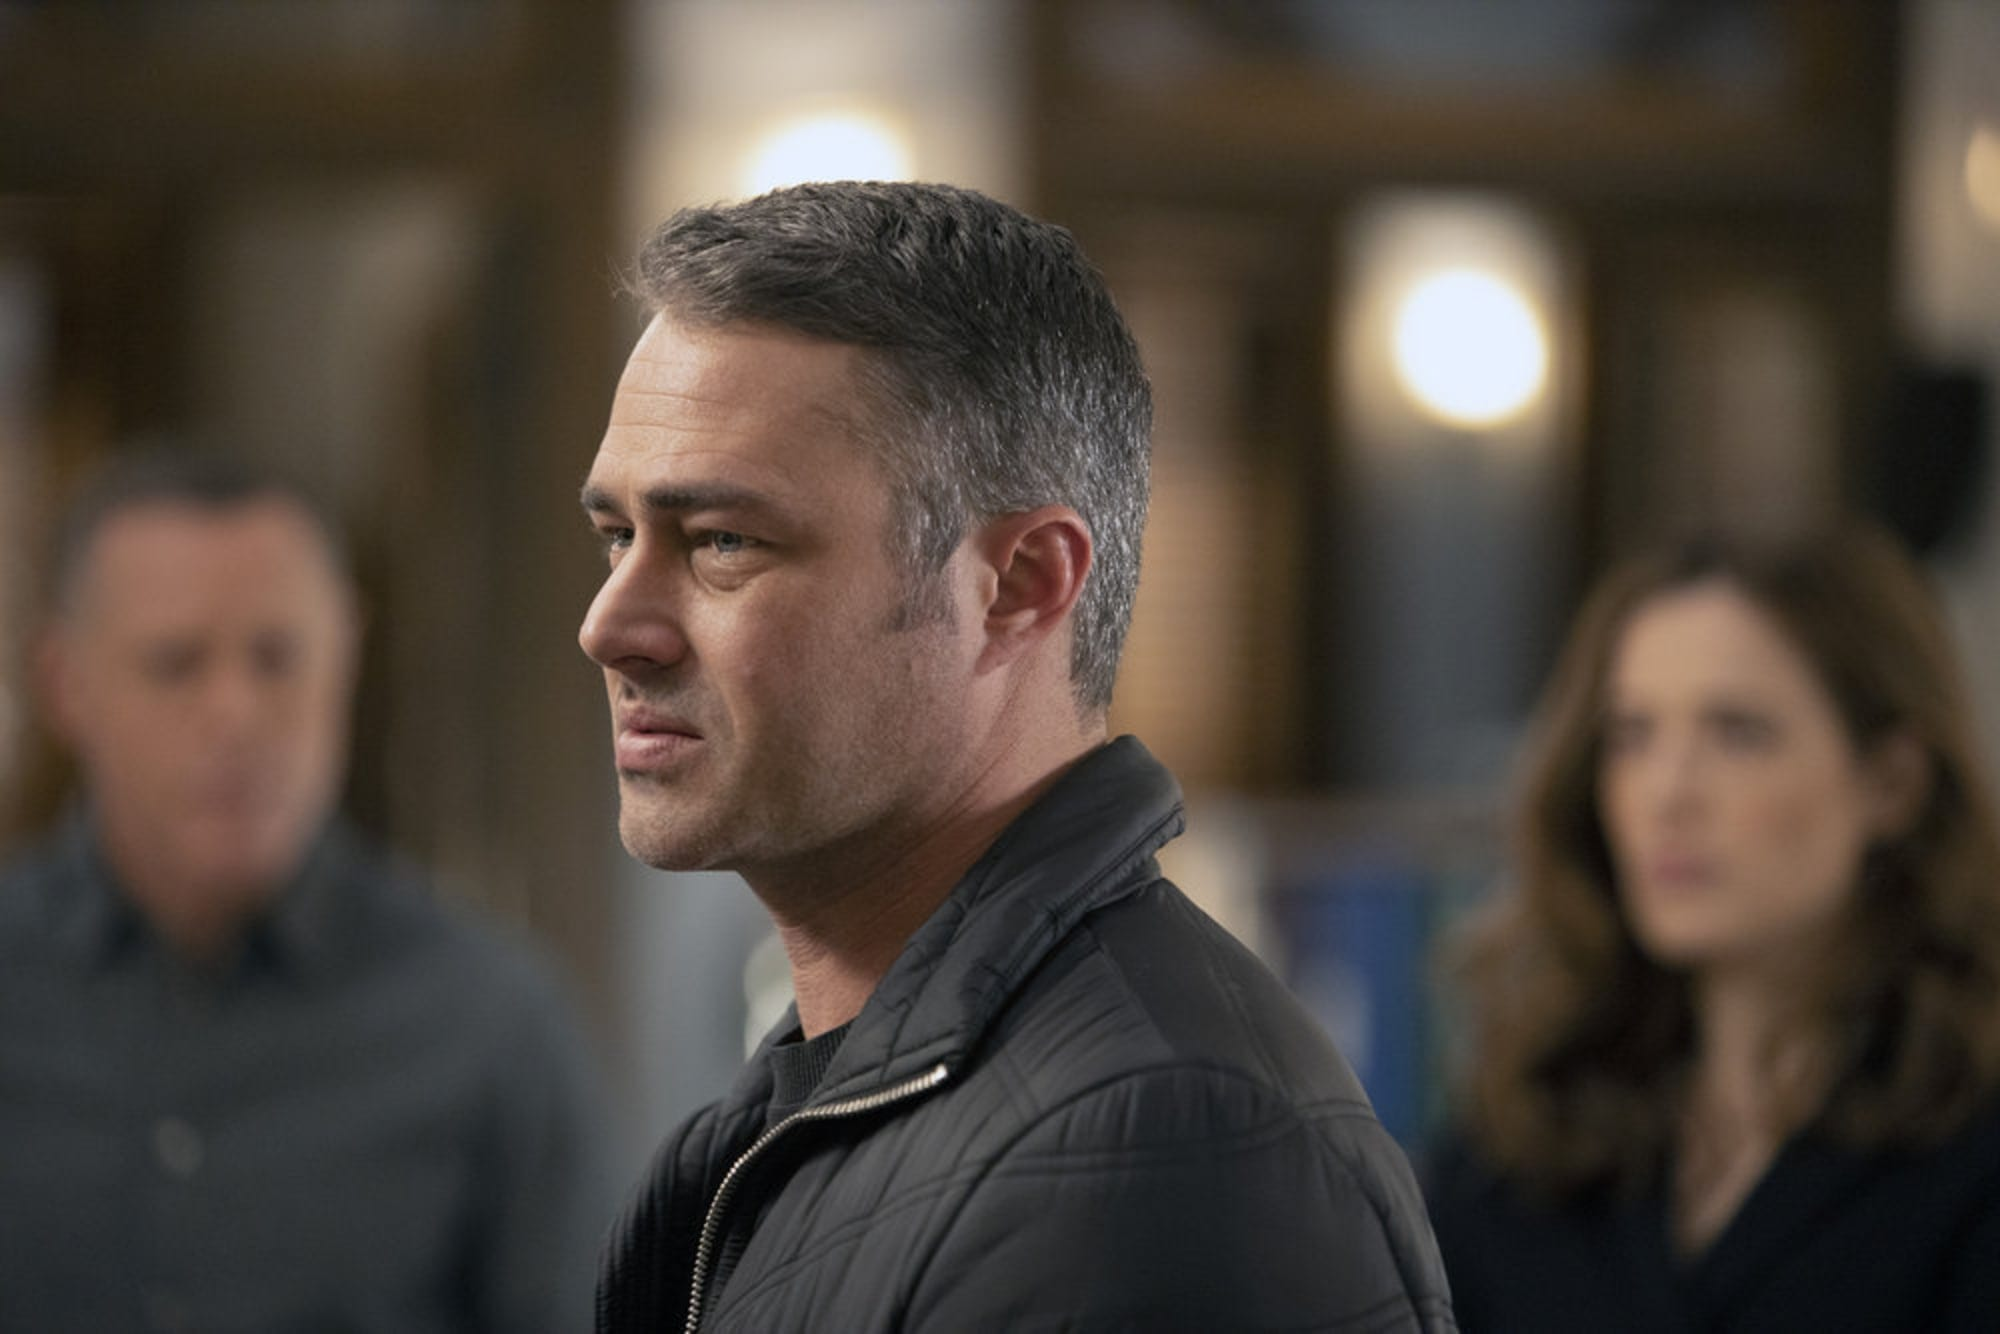 Why did Severide and Brittany Break up